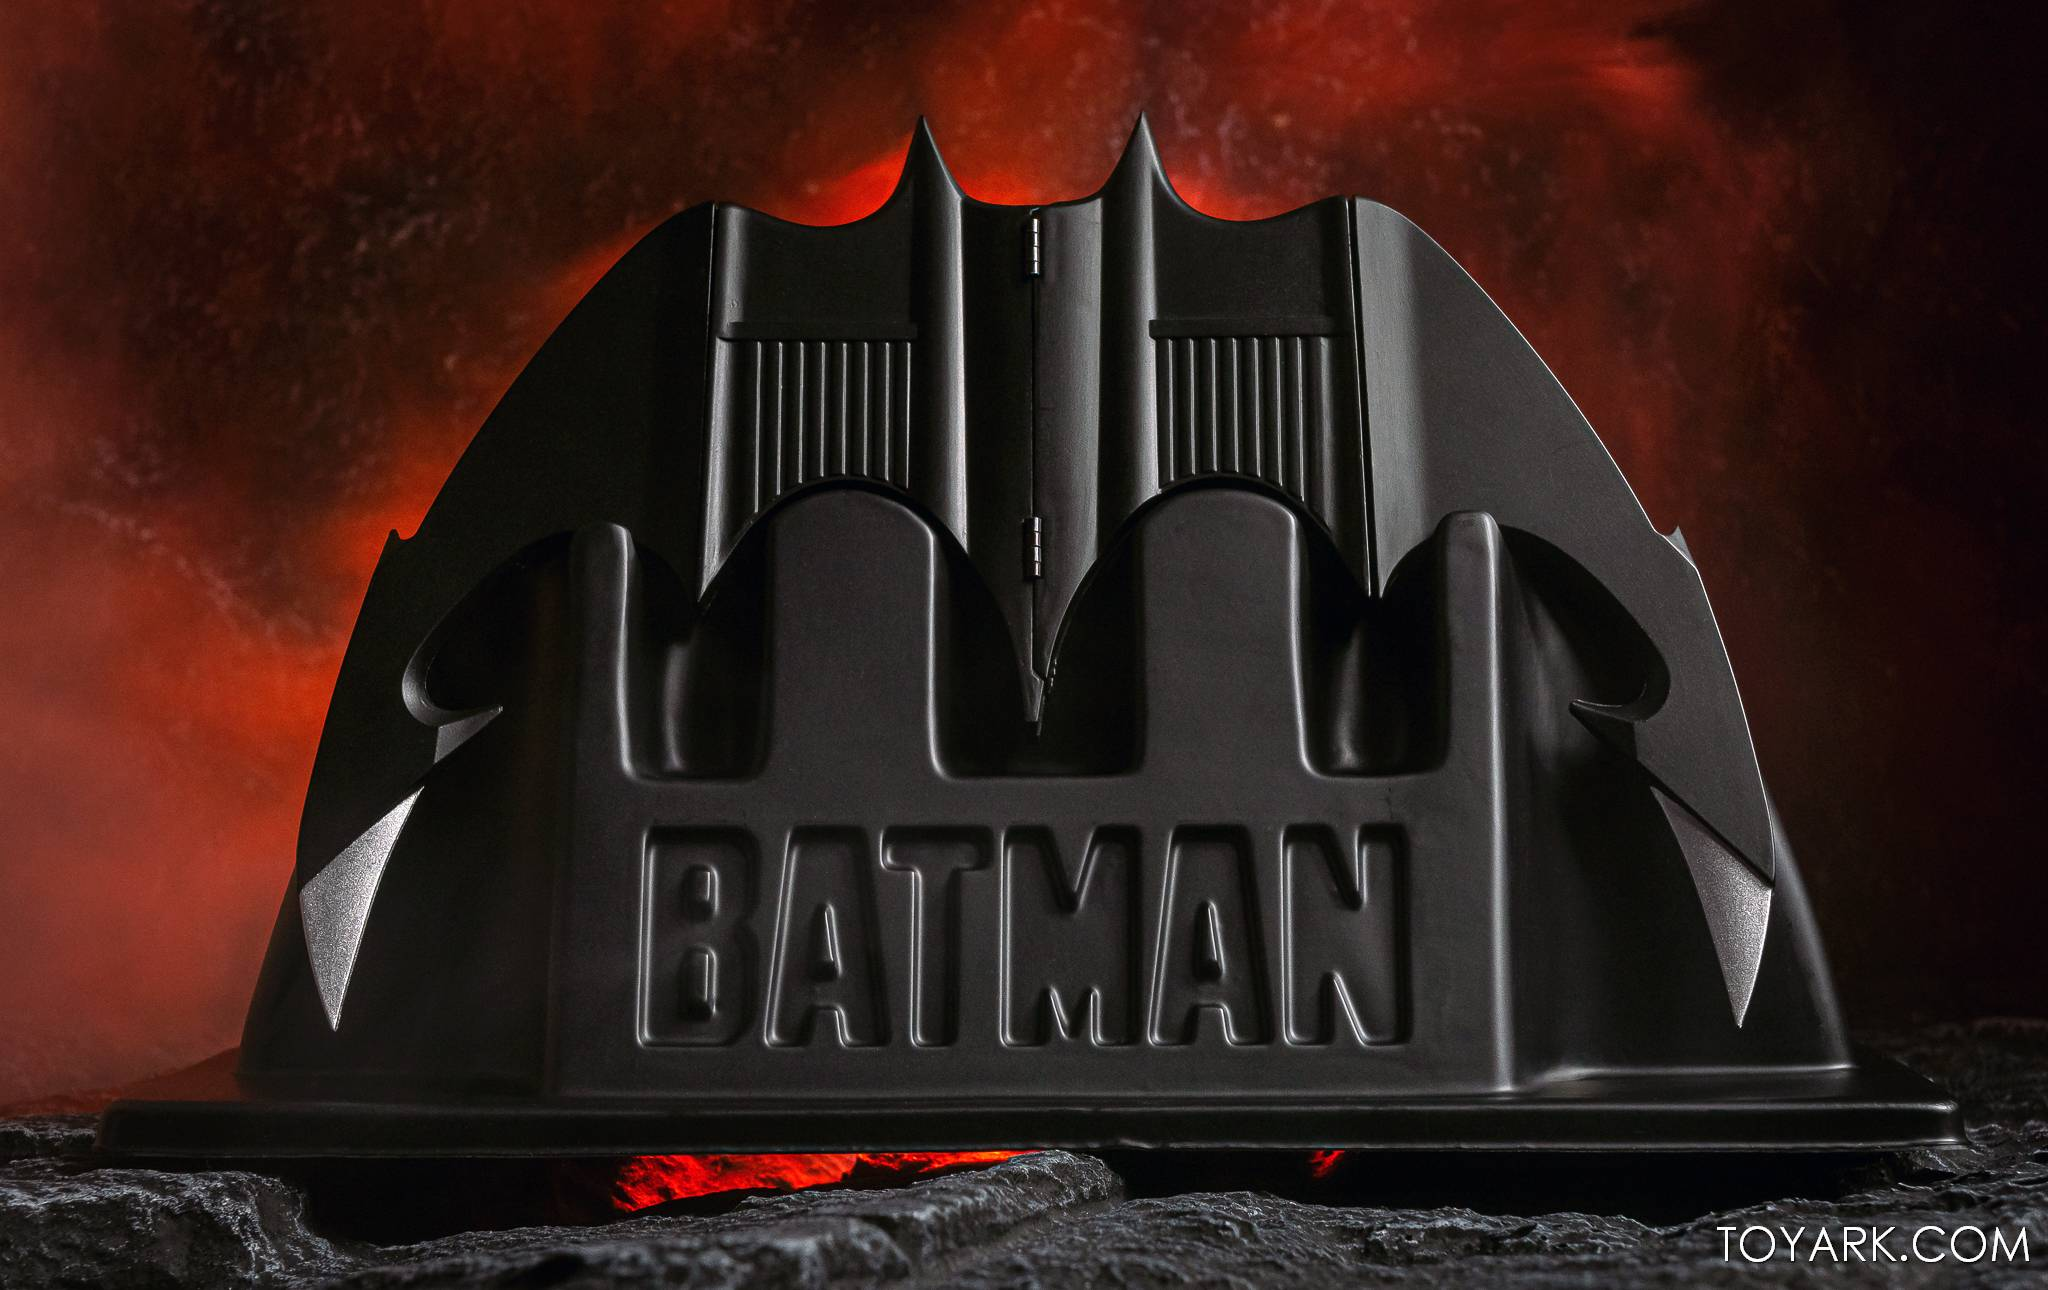 https://news.toyark.com/wp-content/uploads/sites/4/2021/02/NECA-Batarang-018.jpg